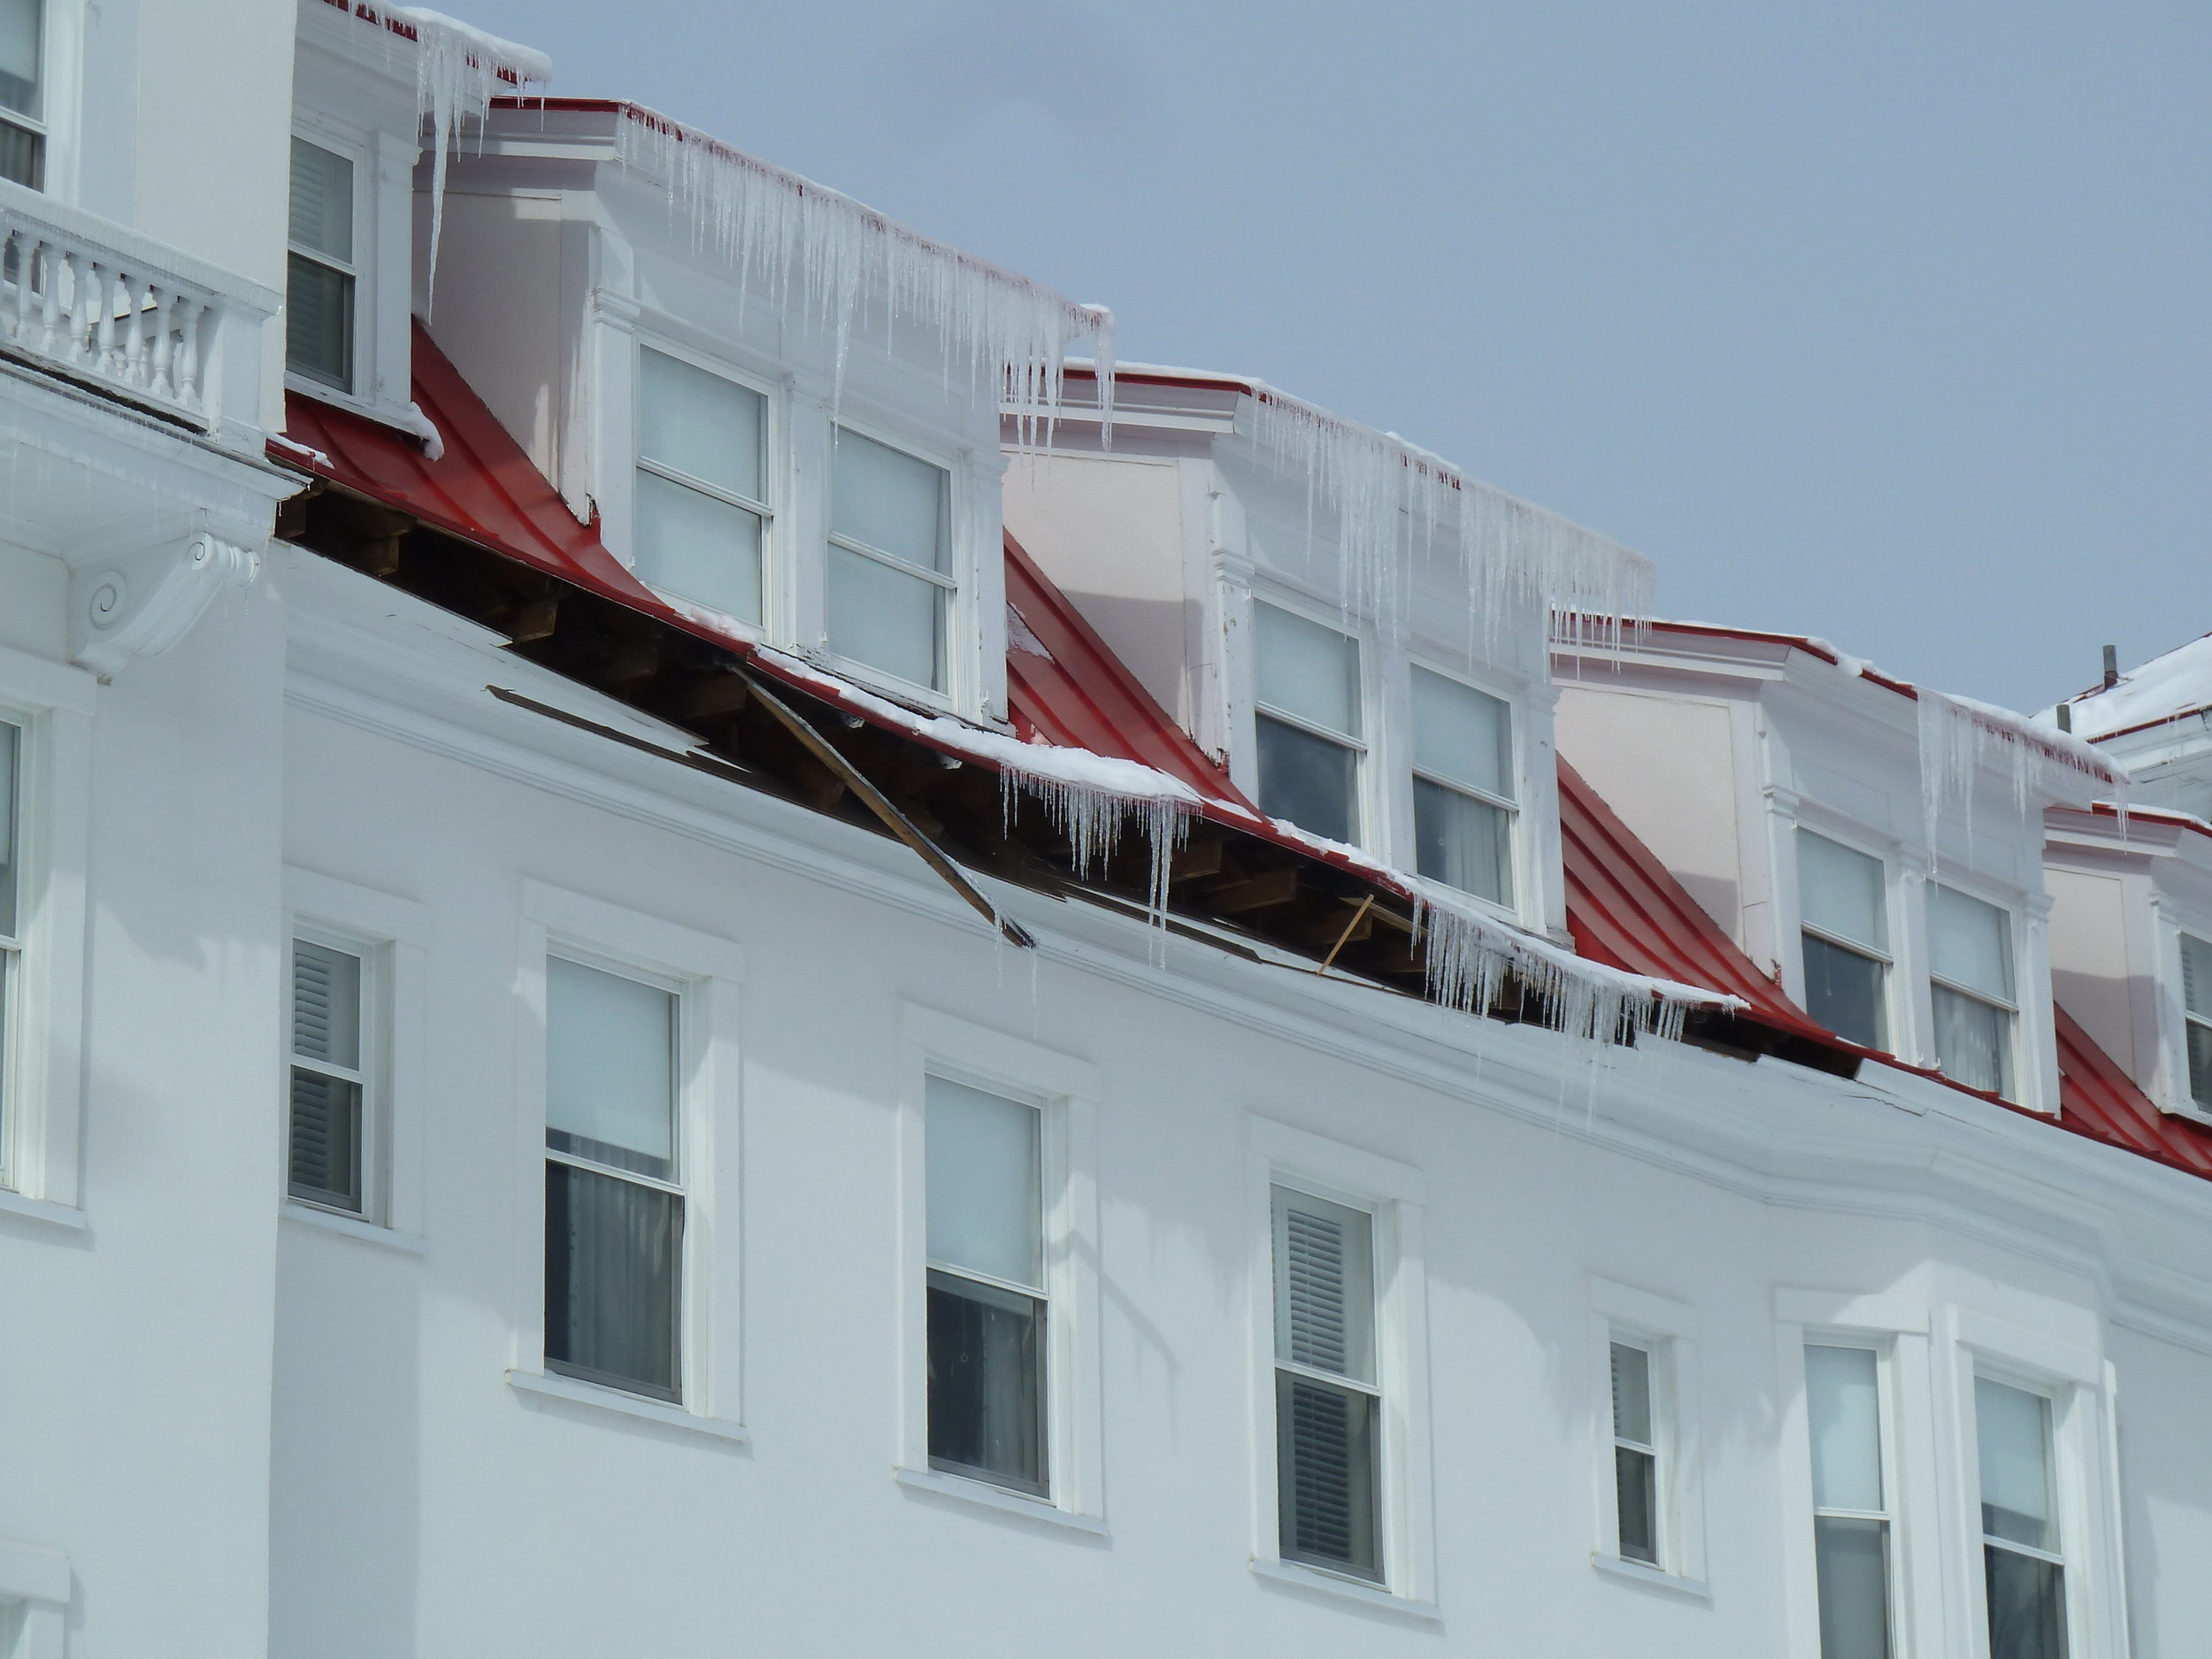 Figure 2:  Ice dams and icicles can cause damage to roof construction. They can be particularly difficult to repair and prevent in older historic structures.